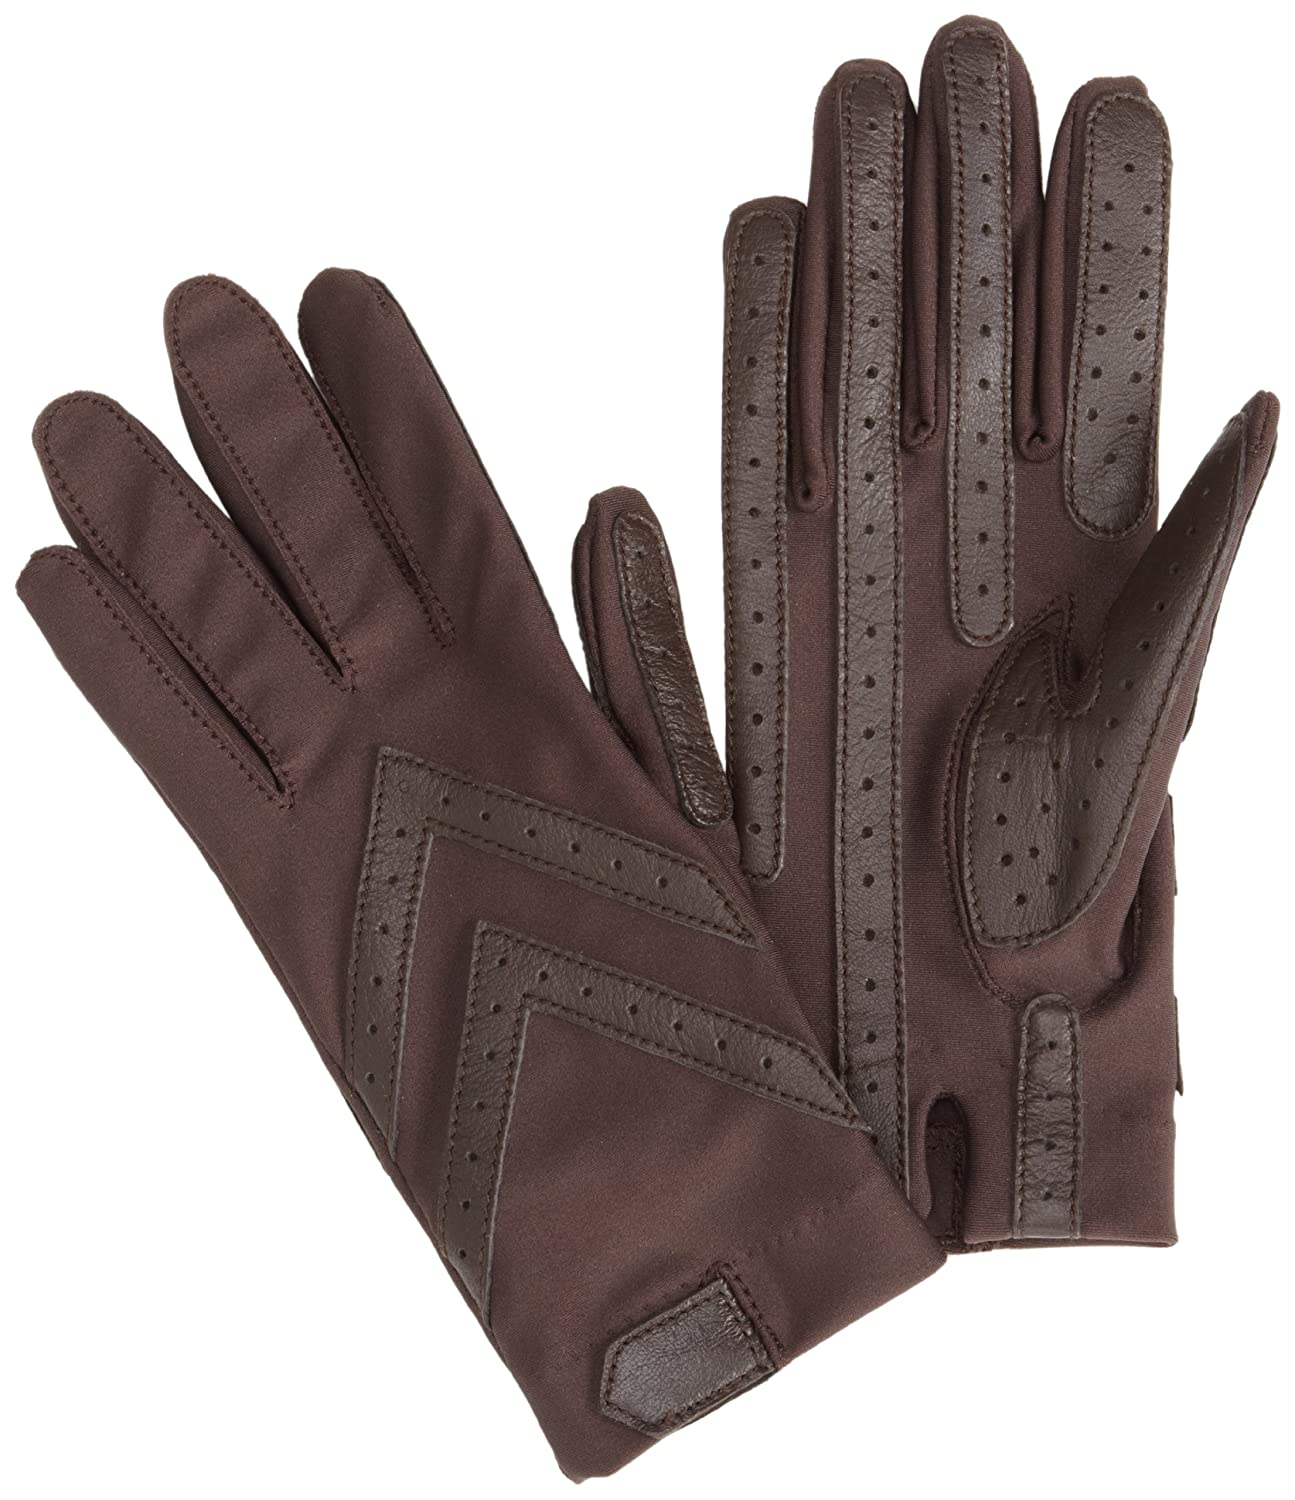 Leather driving gloves vancouver - Totes Isotoner Womens Unlined Leather Palm Driving Gloves Amazon Ca Luggage Bags